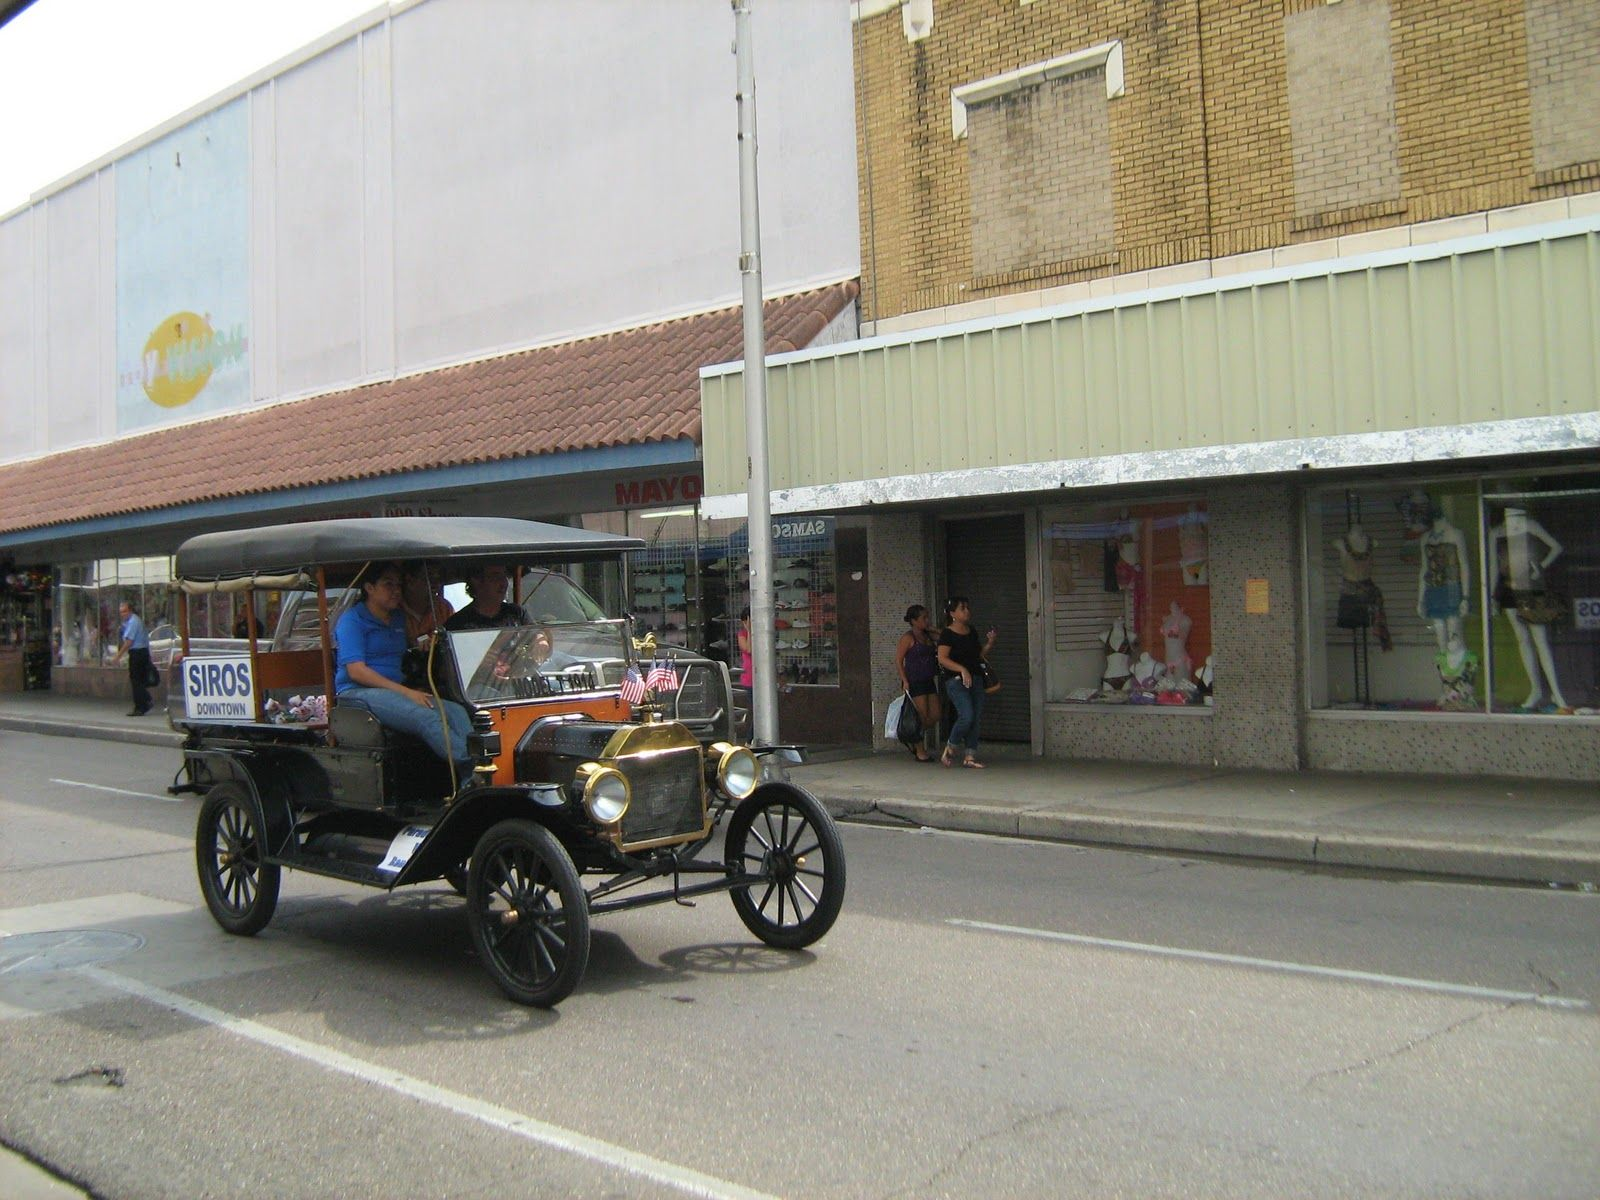 Siros store vintage car cruising on Convent Ave in downtown Laredo